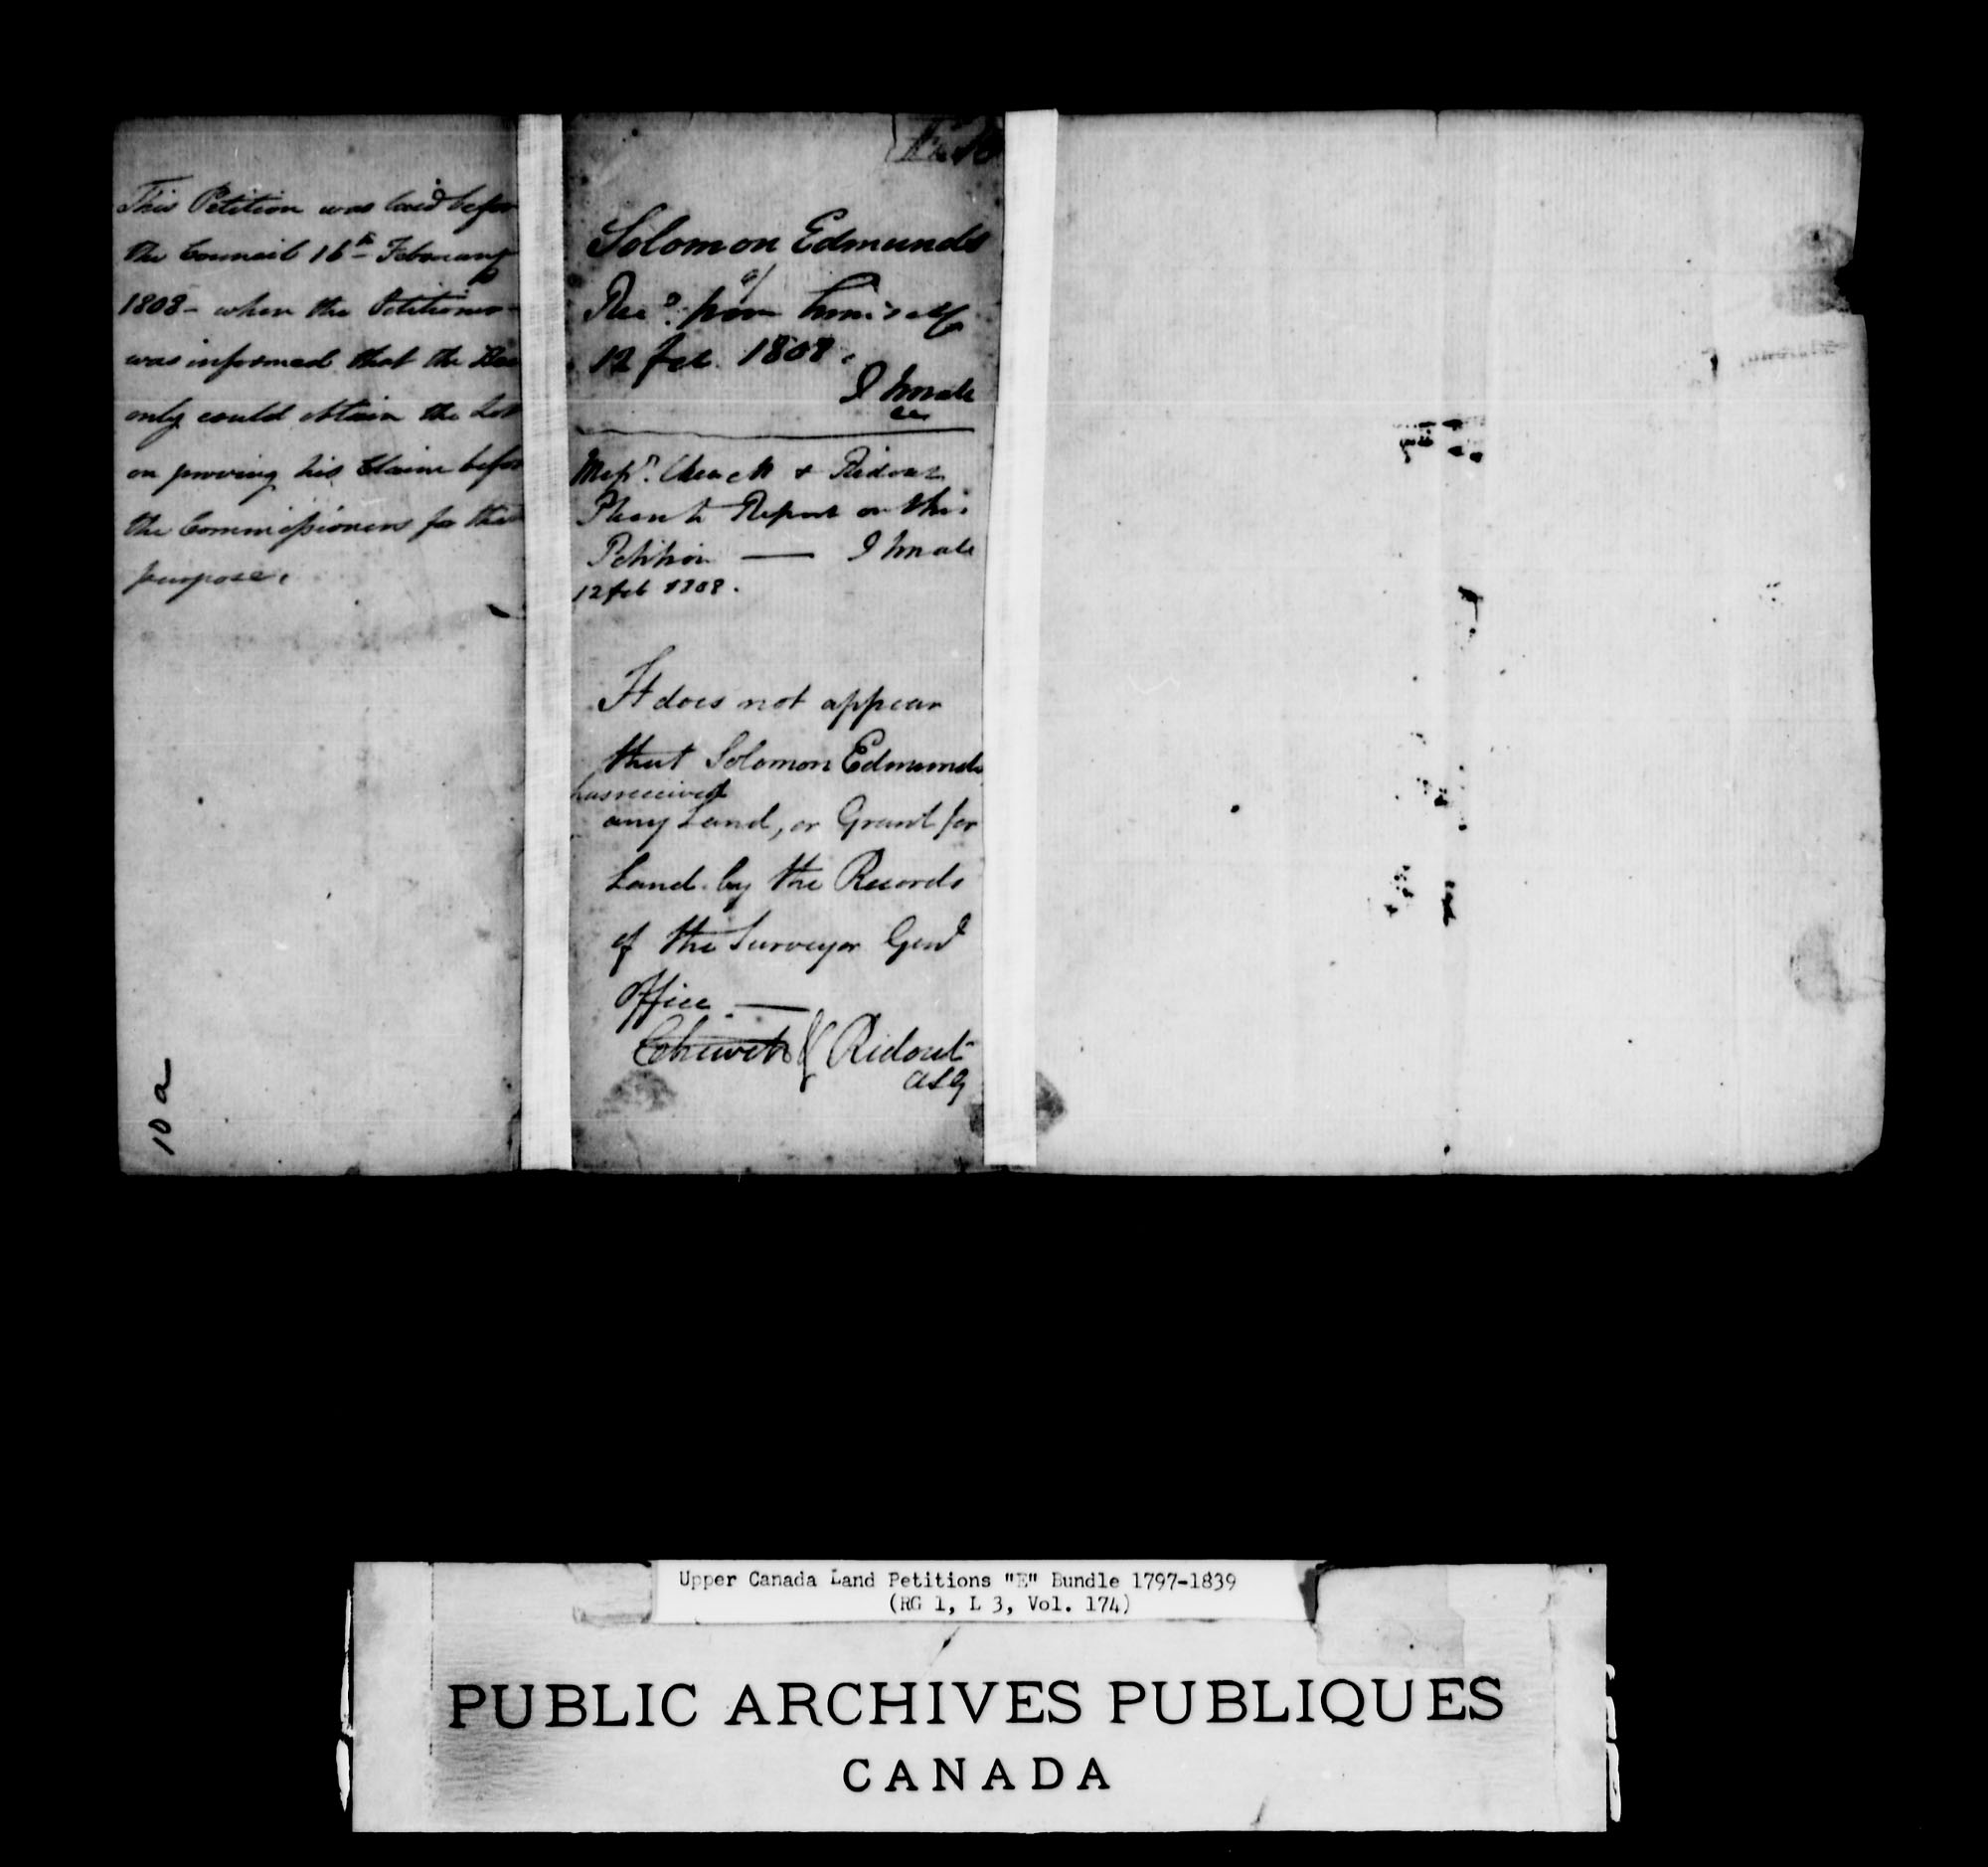 Title: Upper Canada Land Petitions (1763-1865) - Mikan Number: 205131 - Microform: c-1886